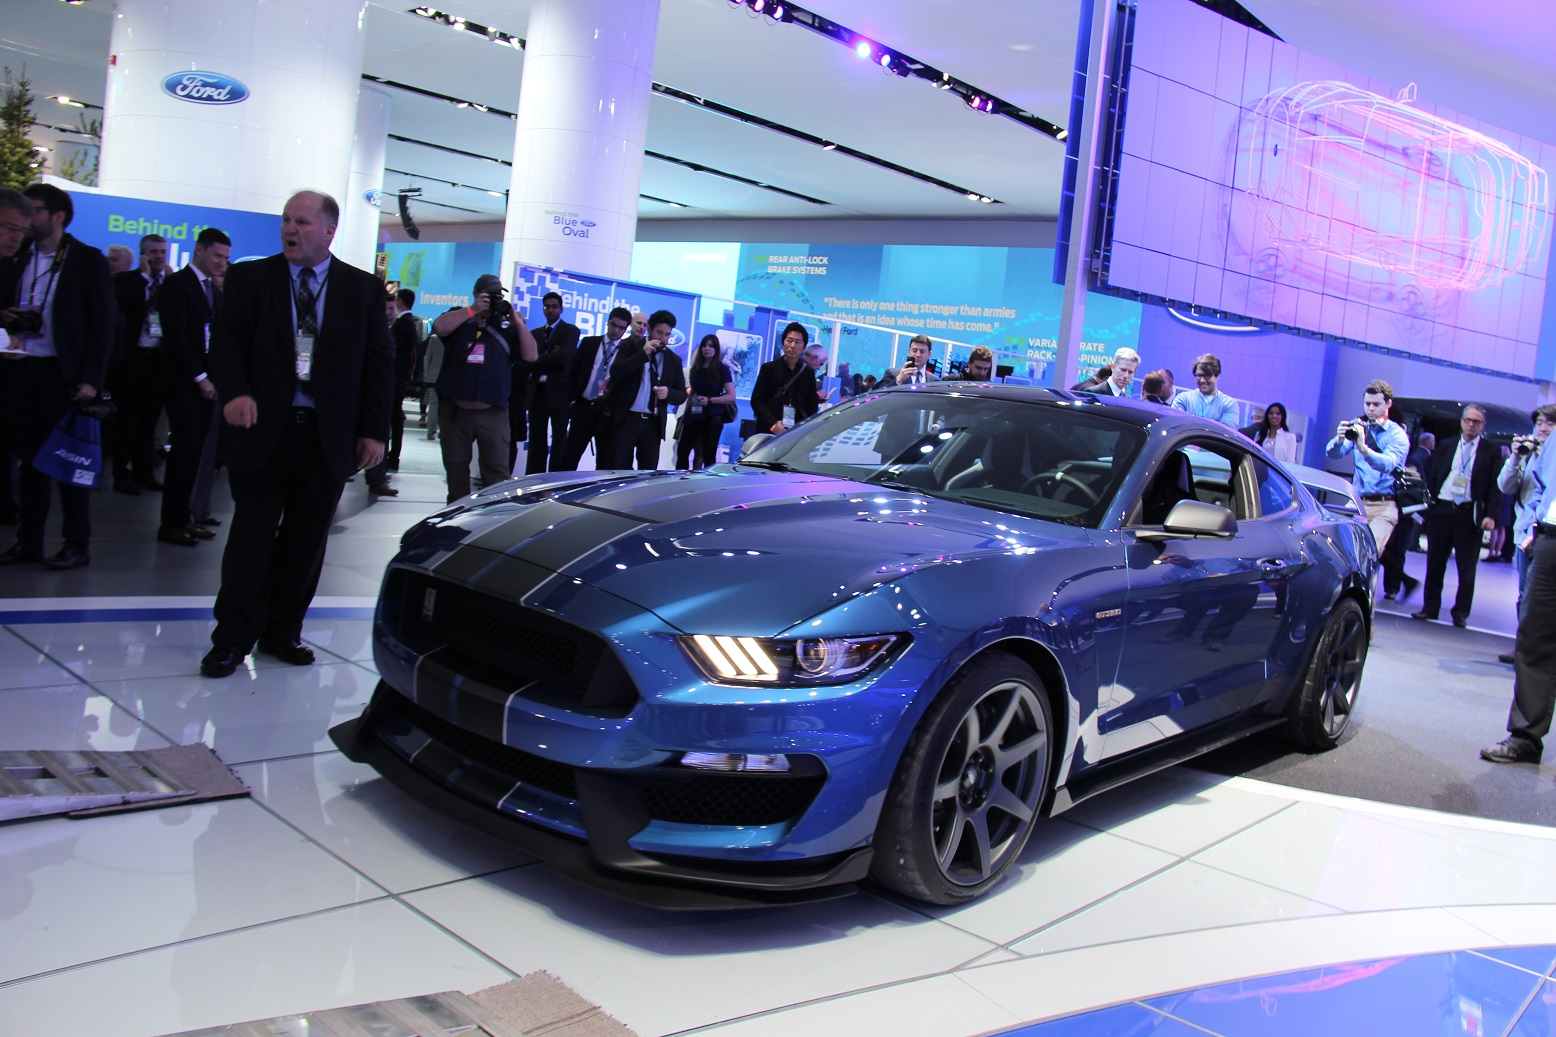 2016 Ford Mustang Shelby Gt350r Preview (Photo 33 of 47)